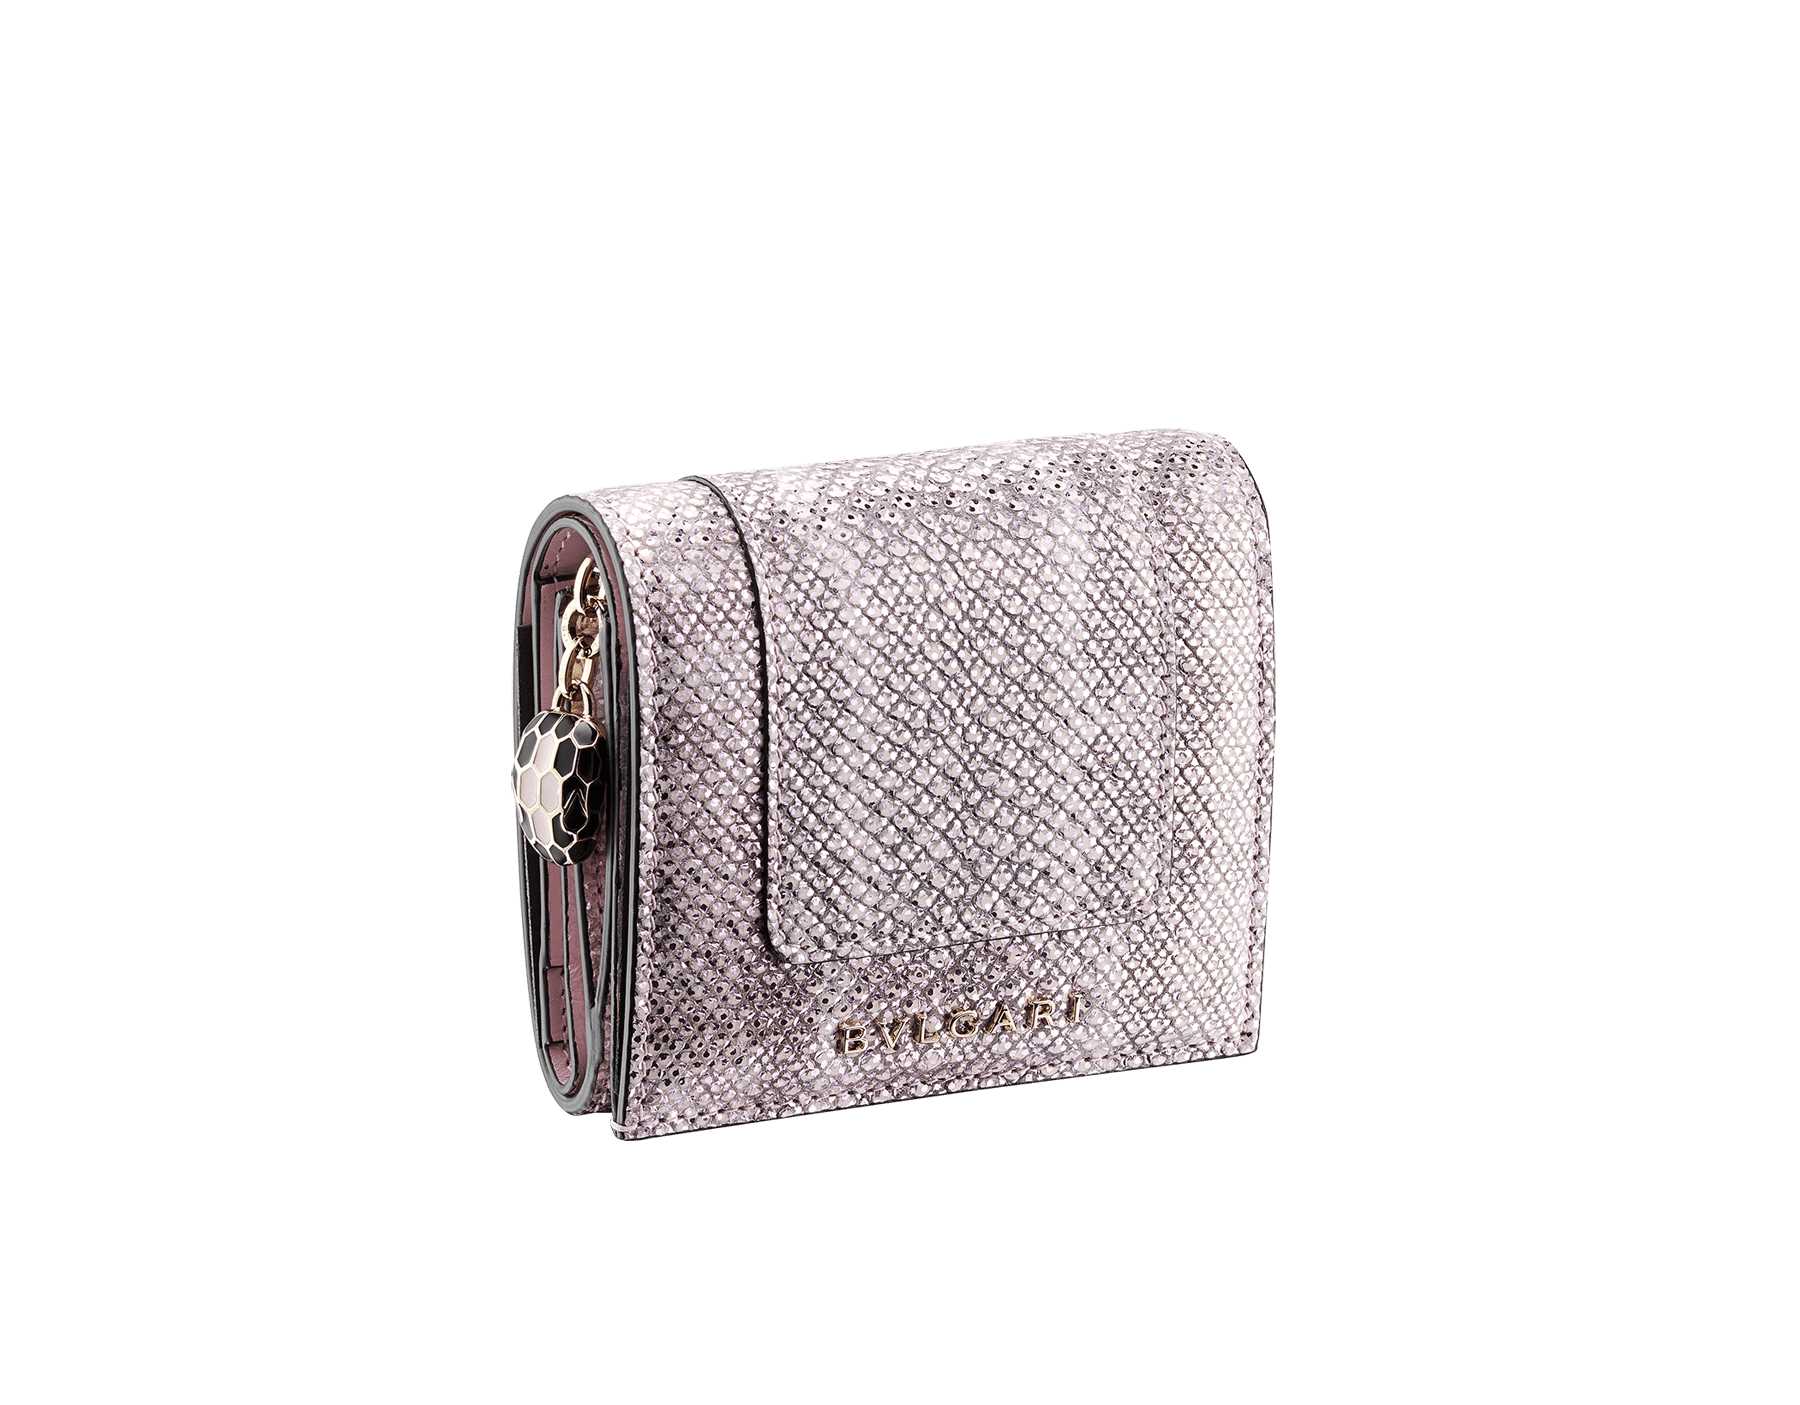 Serpenti Forever super compact wallet in milky opal metallic karung skin and milky opal calf leather. Iconic snakehead stud closure in black and glitter milky opal enamel, with black enamel eyes. SEA-SUPERCOMPACT-MK image 1